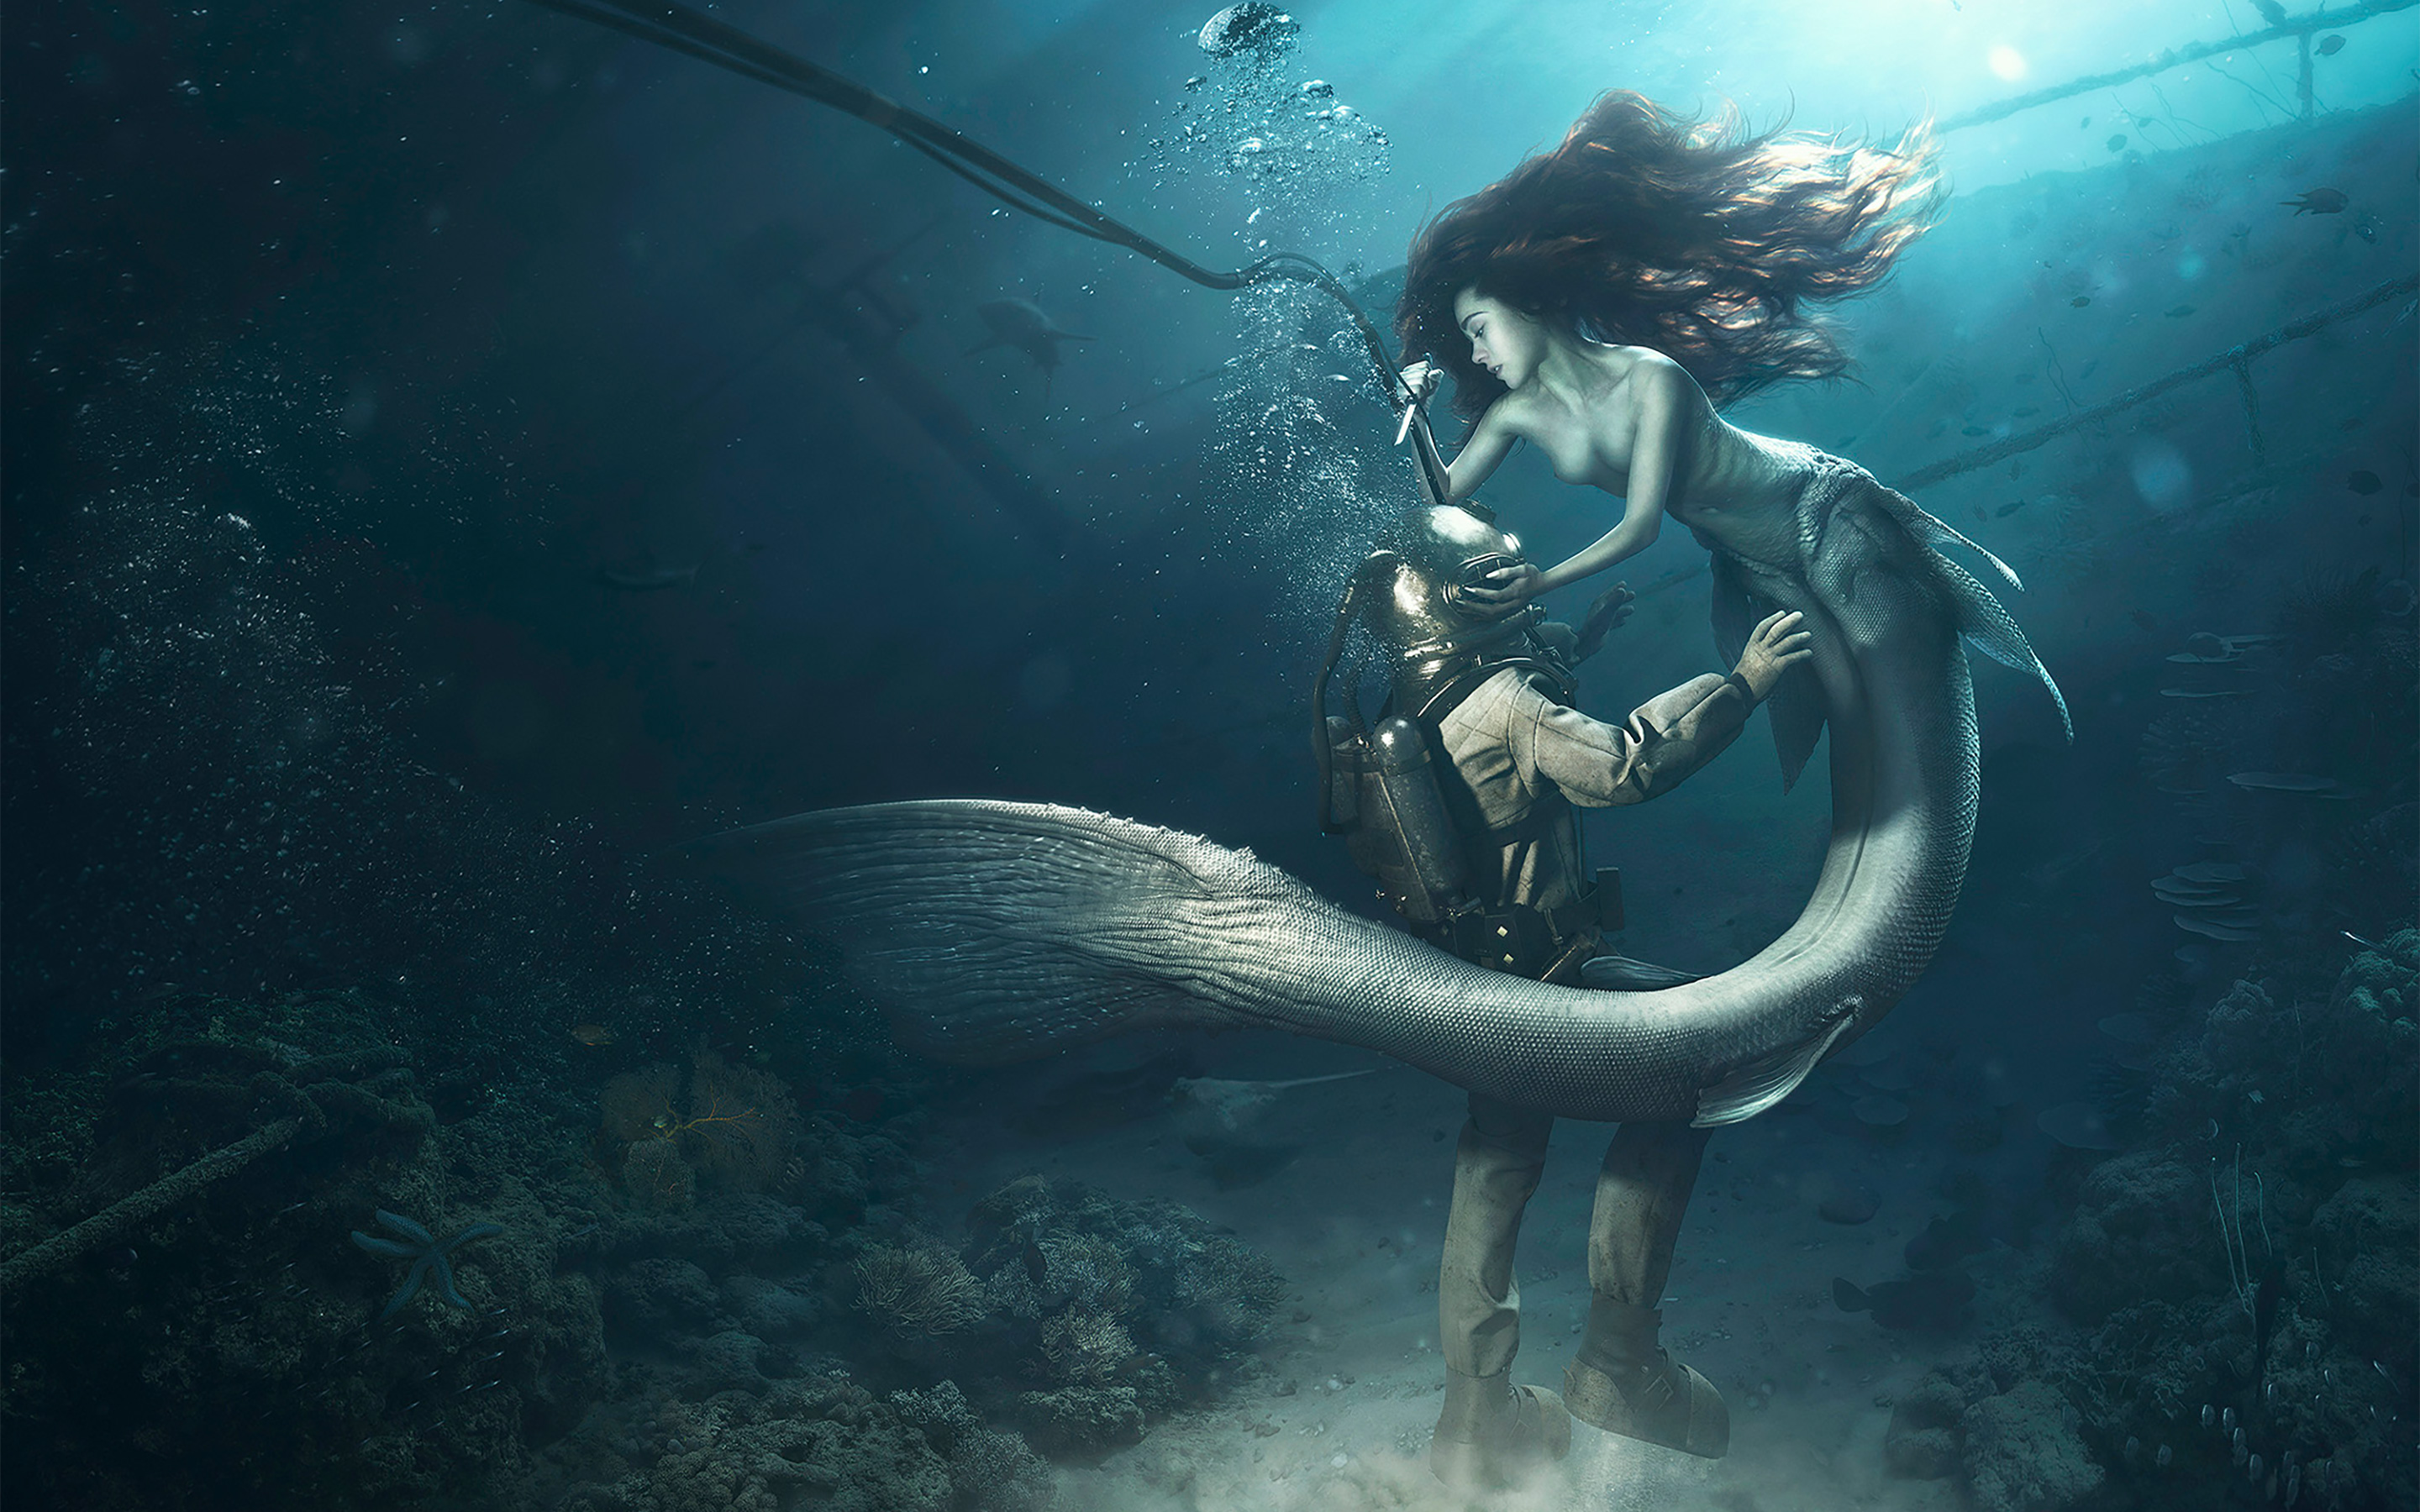 the sailor and the mermaid on Behance